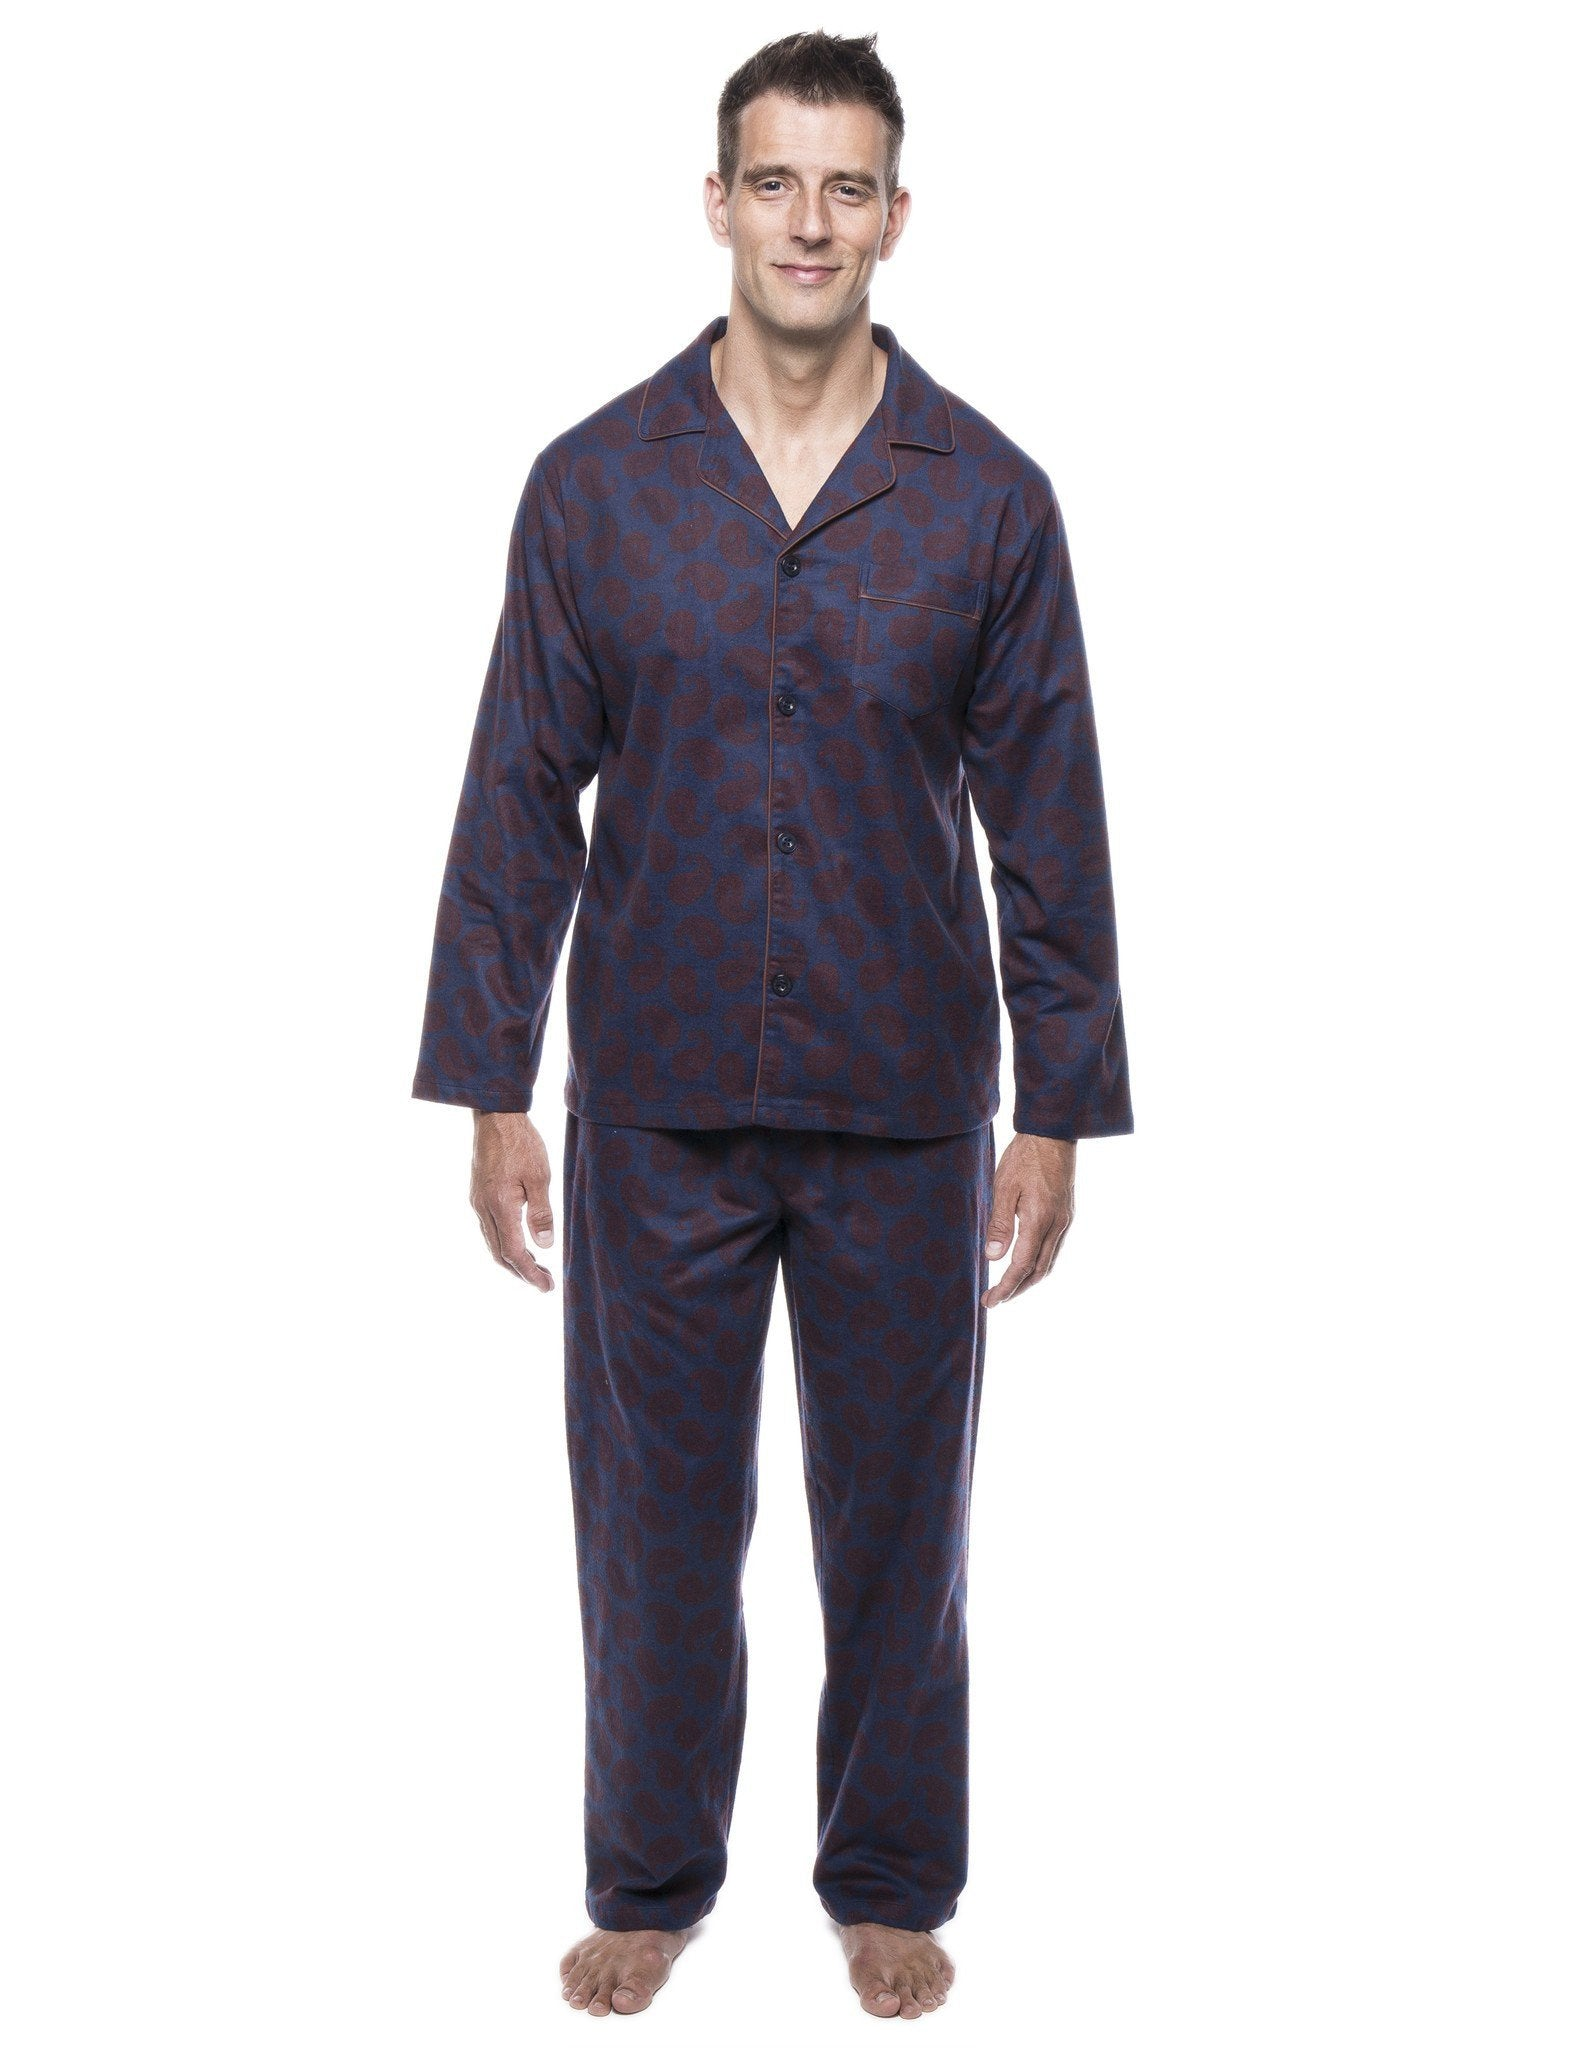 Men's 100% Cotton Flannel Pajama Set - Paisley Navy/Brown